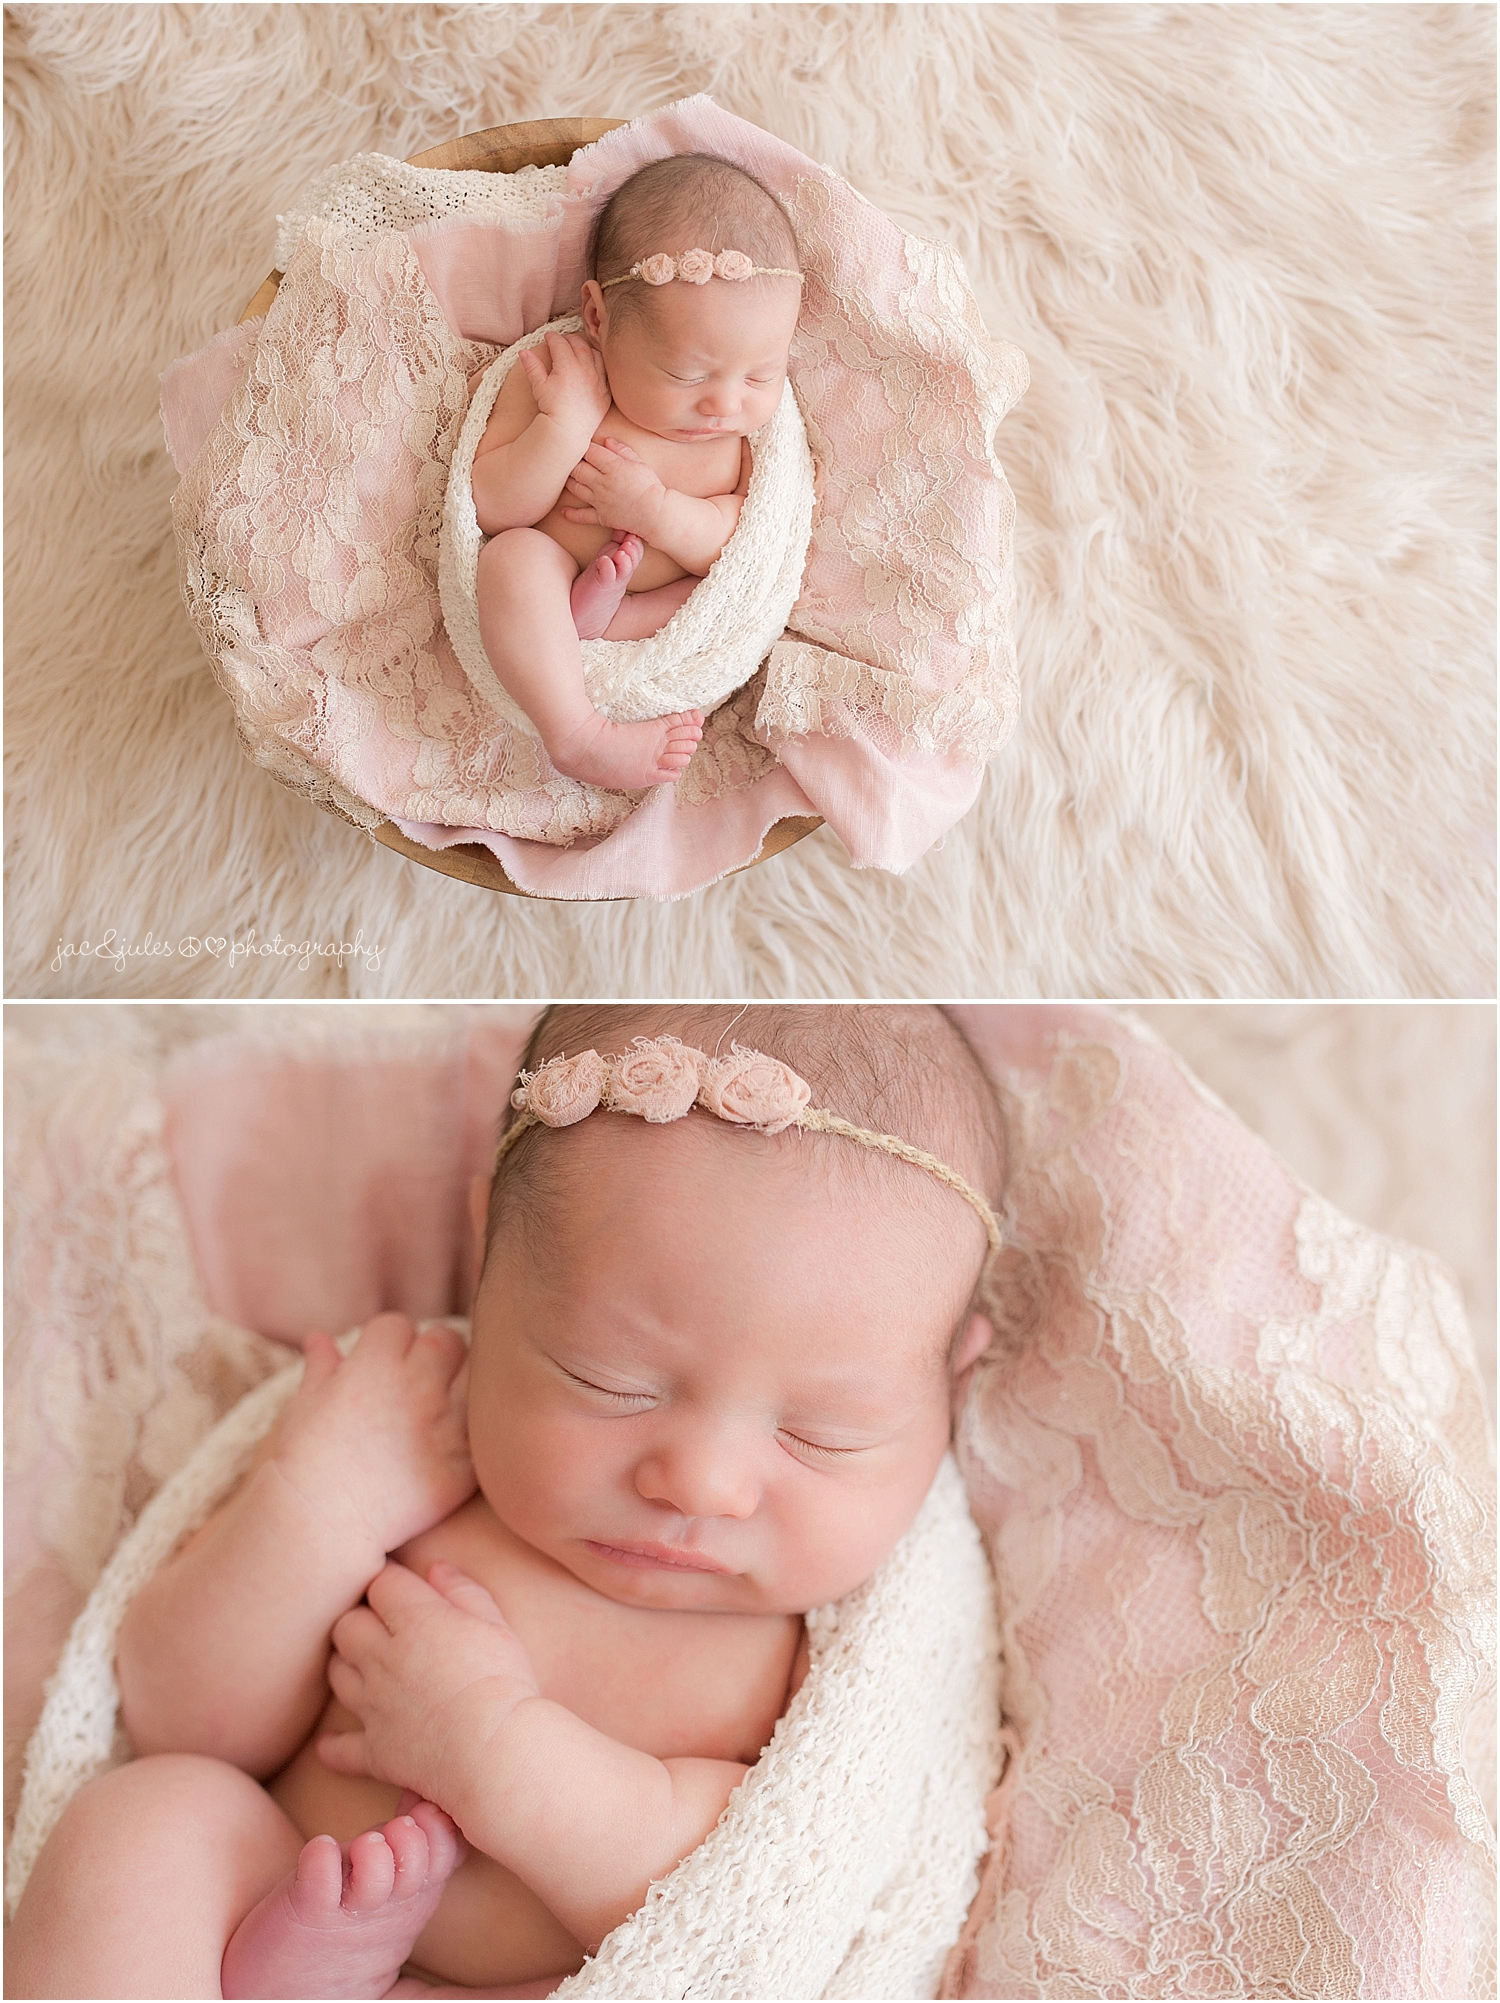 jacnjules photographs newborn baby girl in an egg wrap in their home in nnj